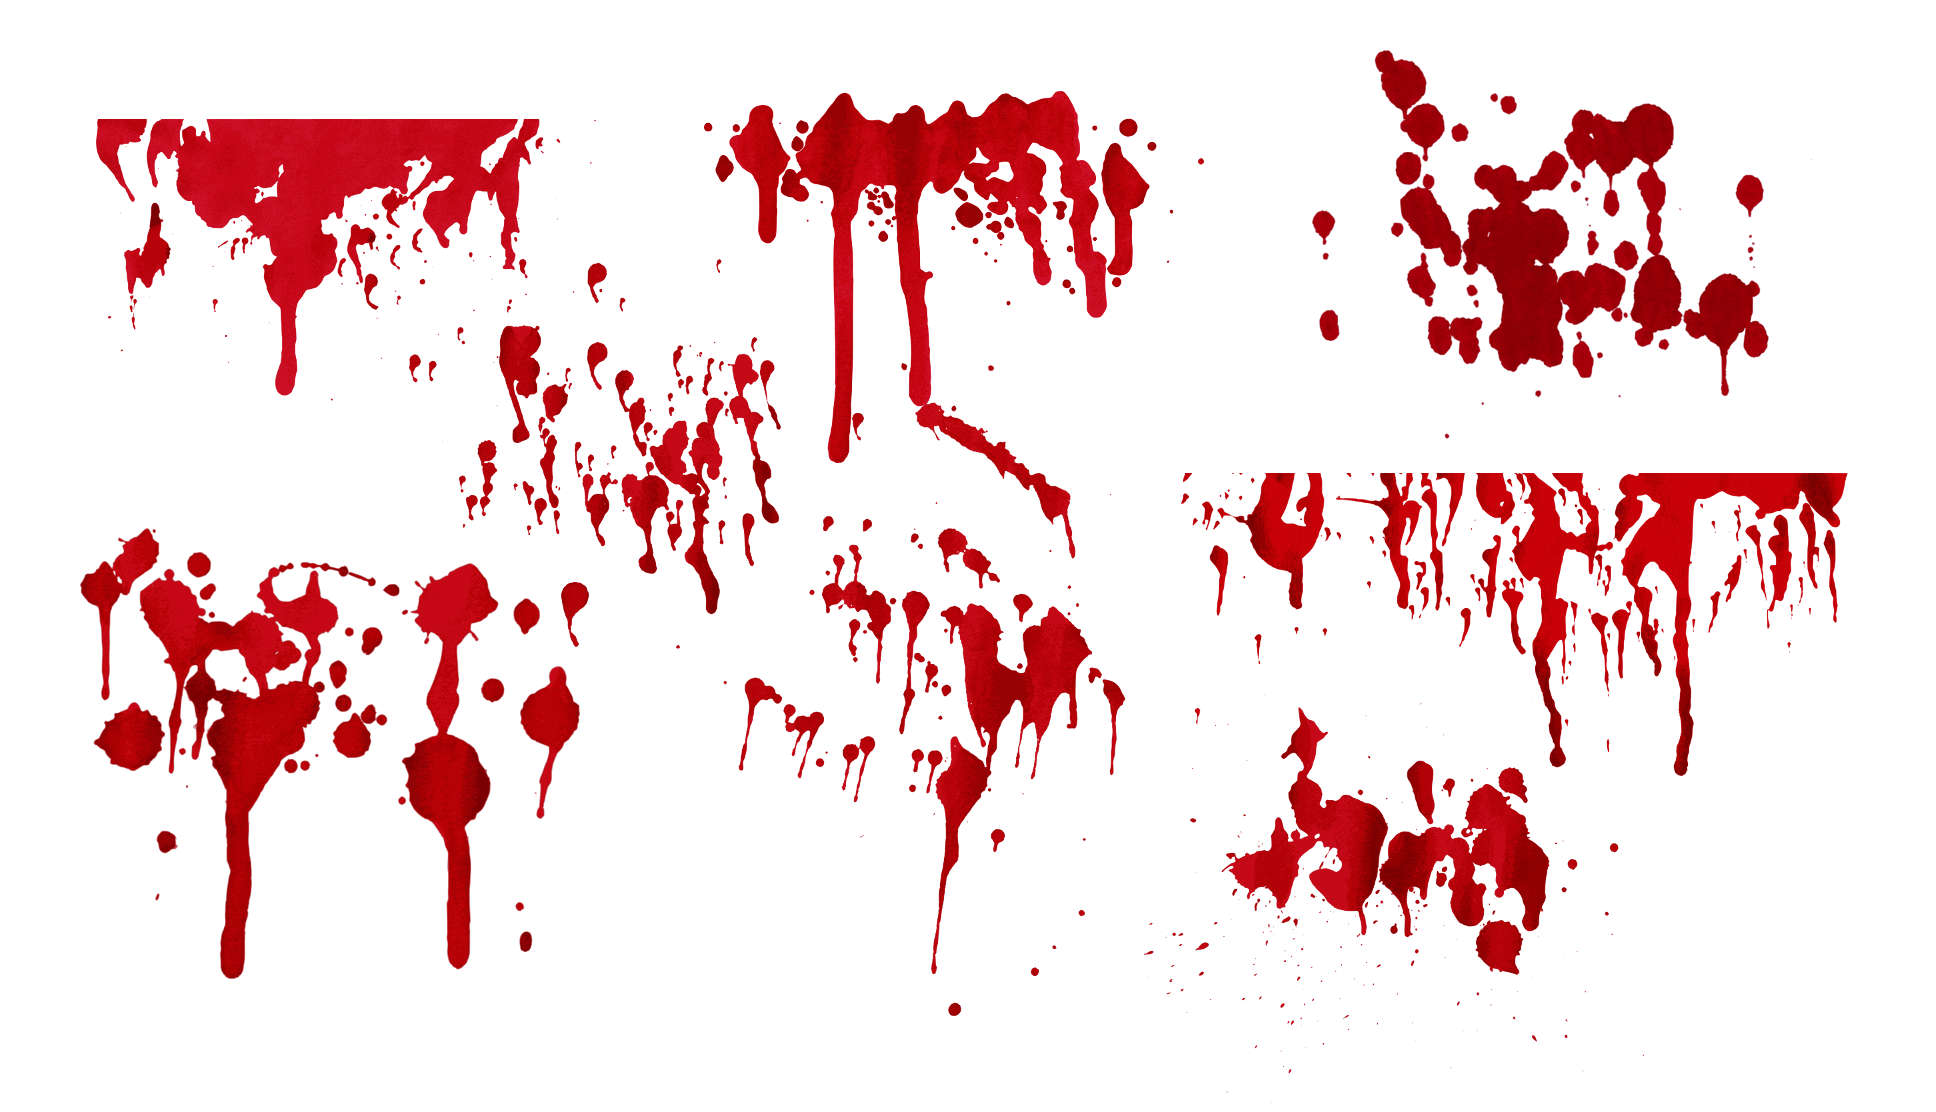 Blood Texture Overlay – A blood splatter i created in adobe photoshop cs3.